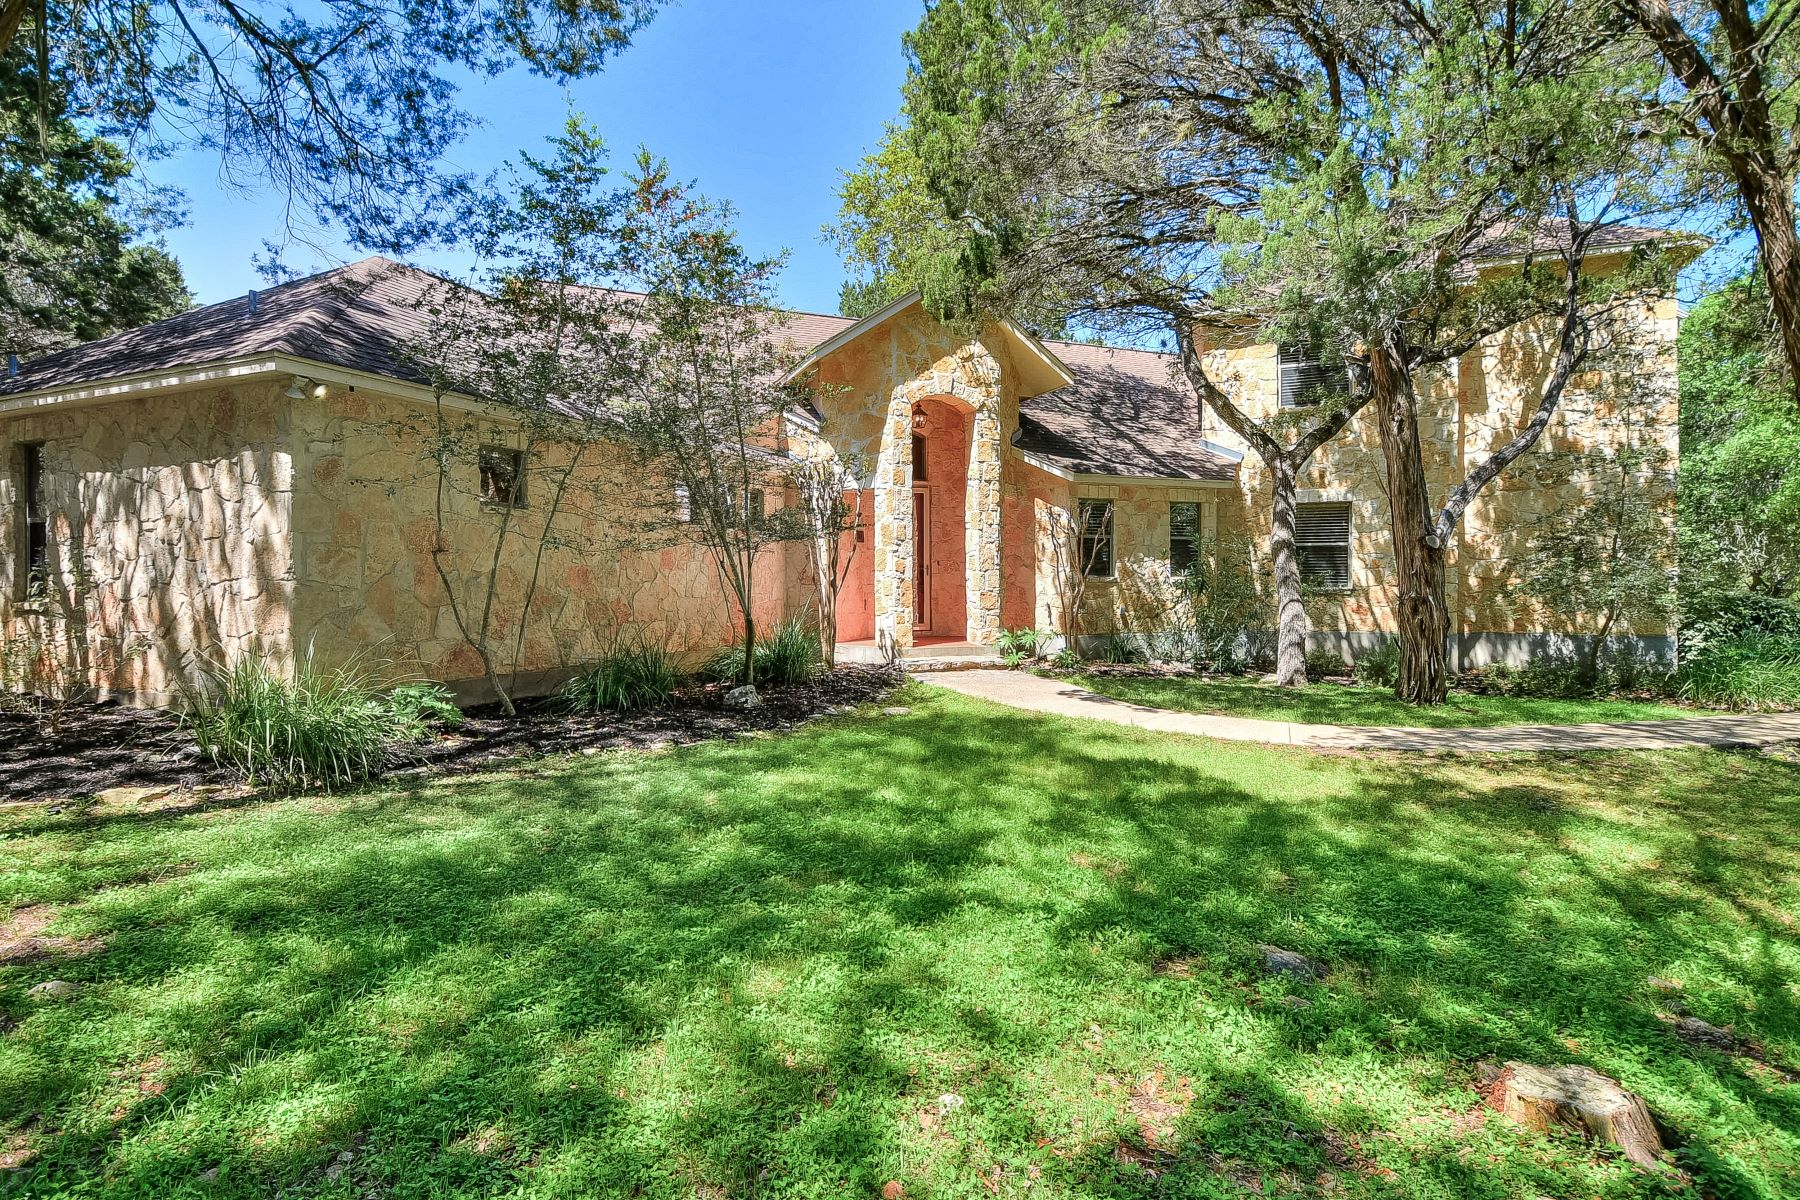 Single Family Homes for Sale at Beautiful Custom Home With Seperate Casita 2 Trophy Lane New Braunfels, Texas 78132 United States